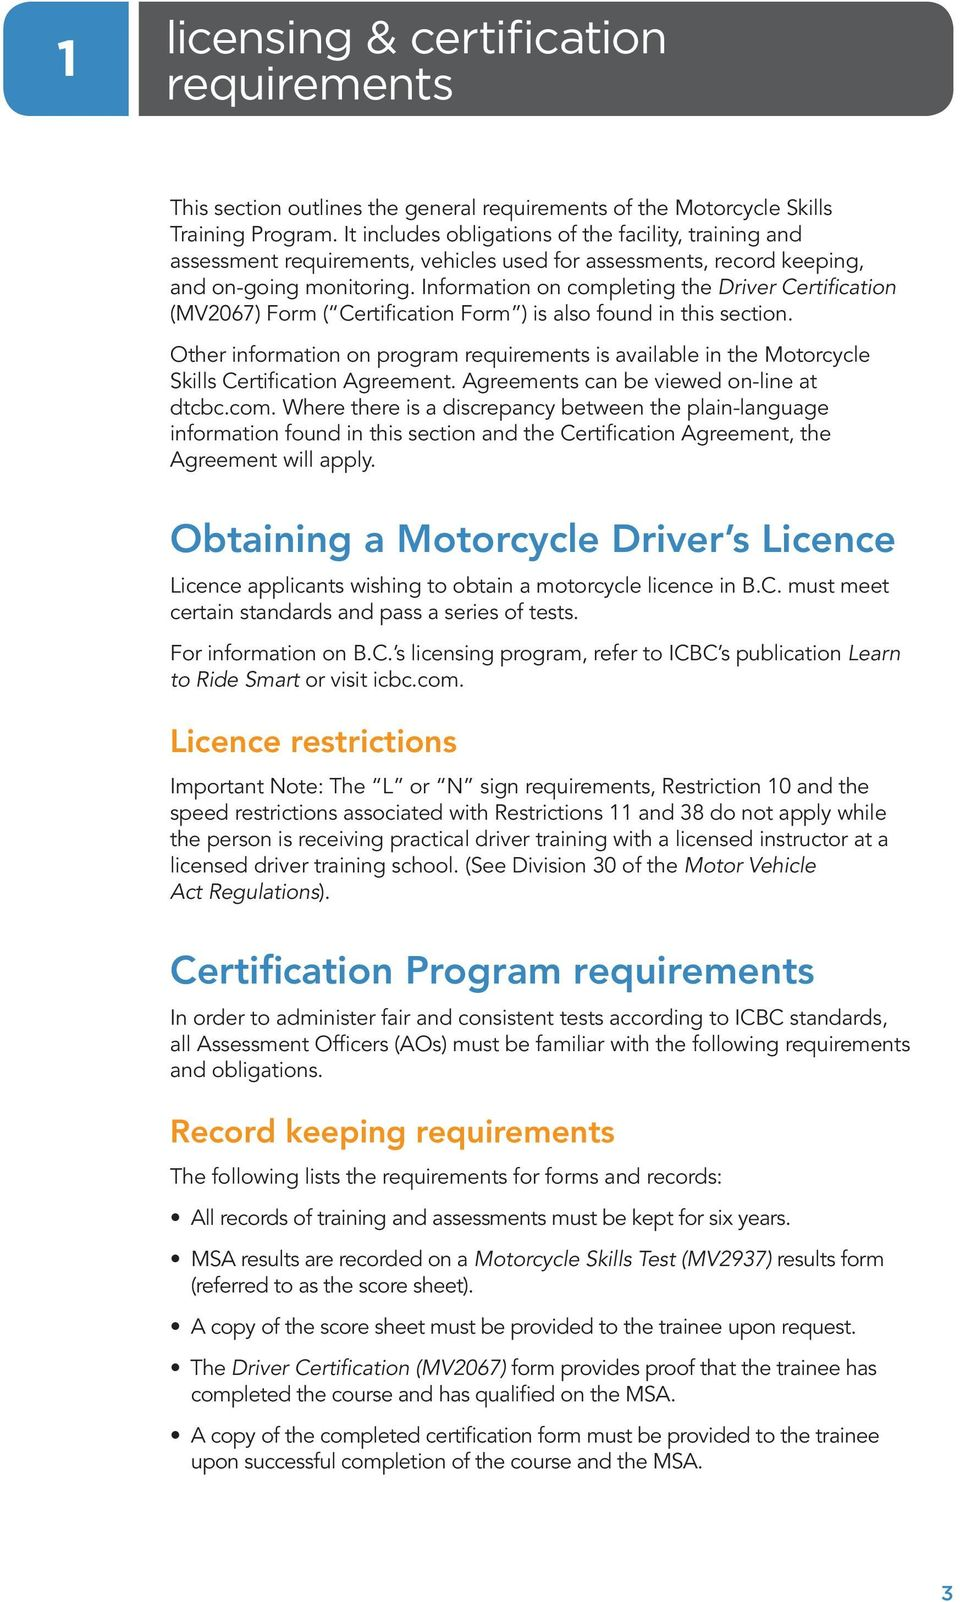 motorcycle skills assessment procedures manual for